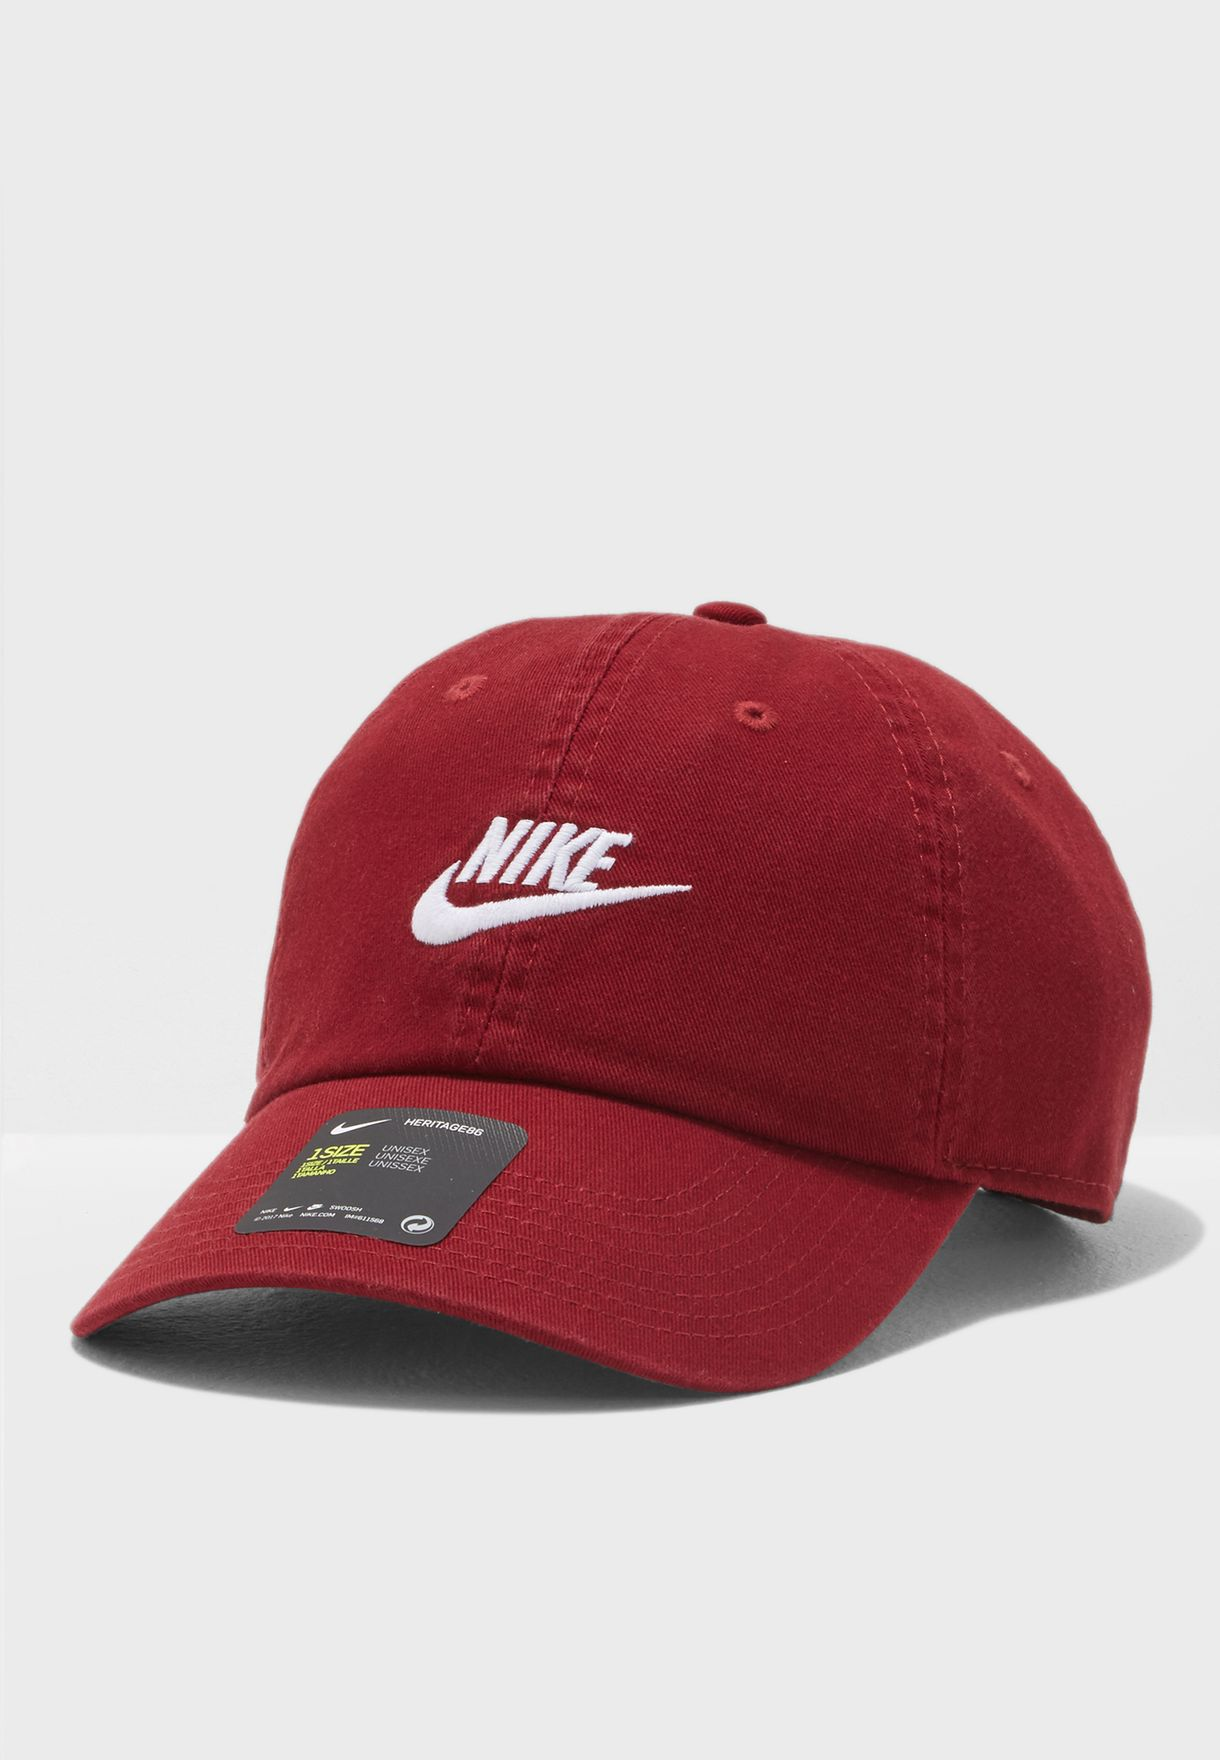 10c4c441ddd shopping lava black white daring red nike men snapback hat lebron pro  perforated hot dddb5 bea76  discount code for h86 futura washed cap 9969f  3442f